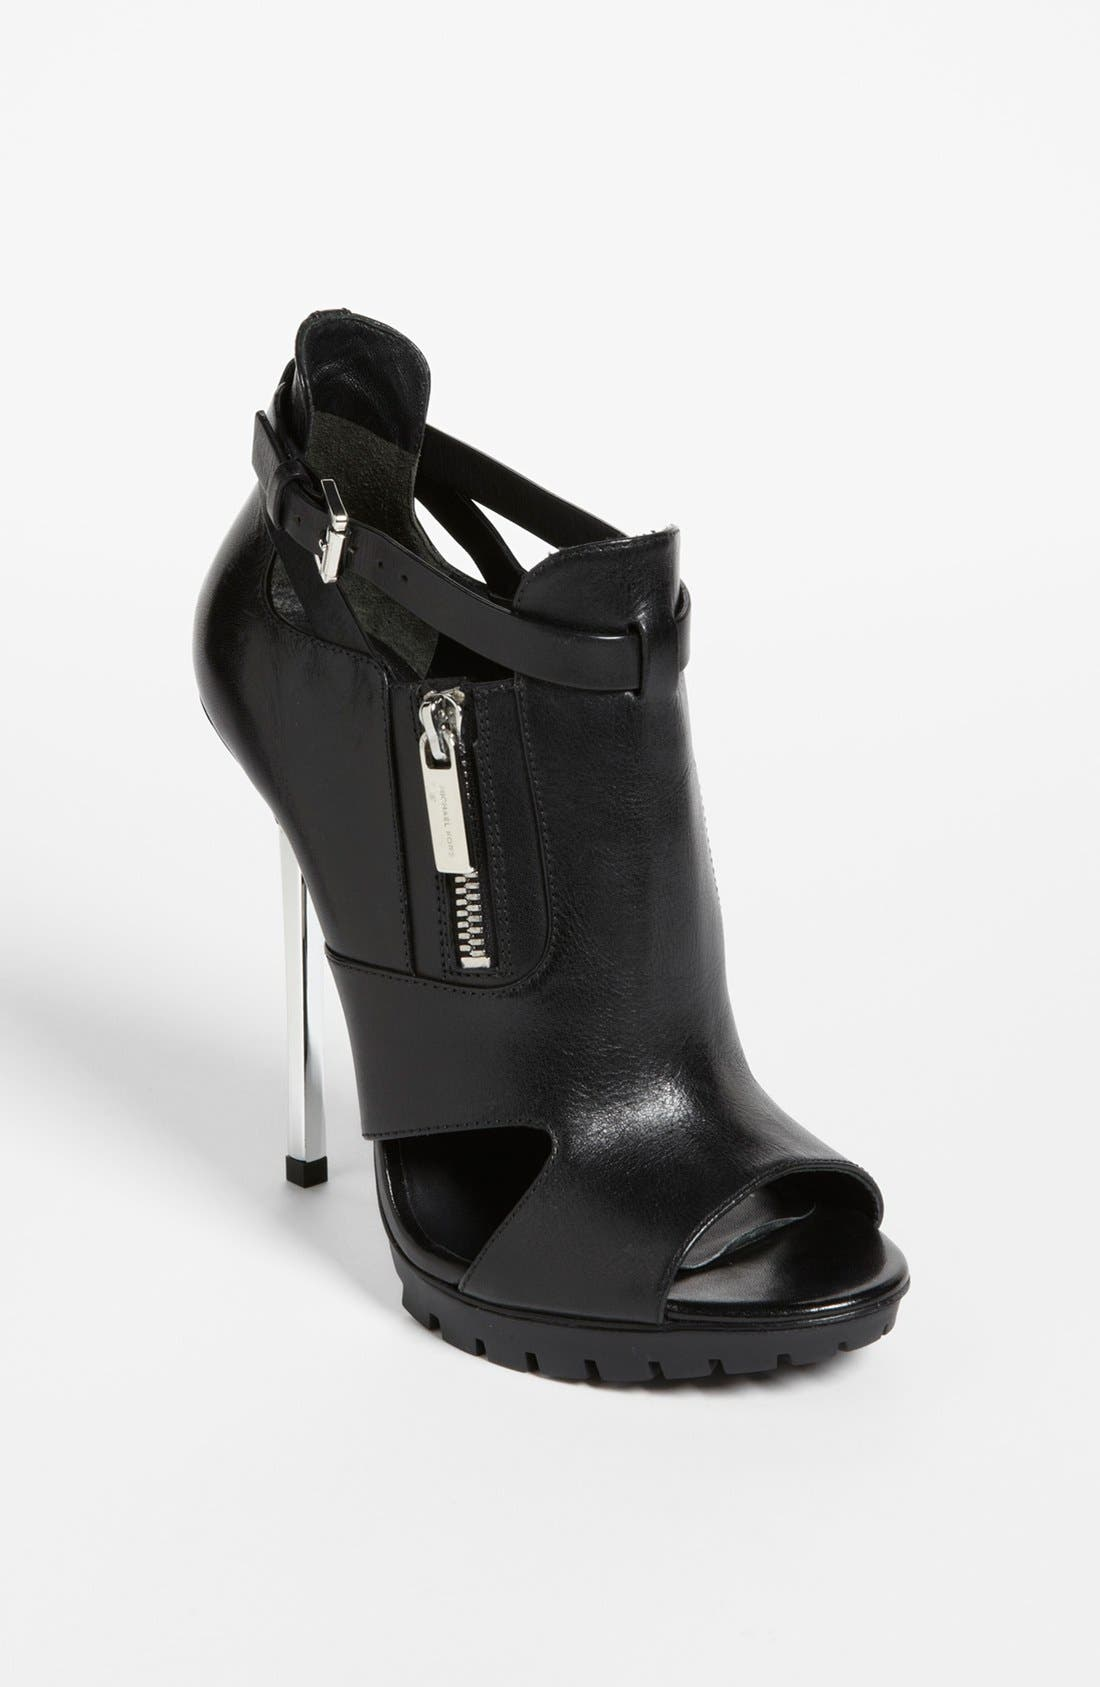 Alternate Image 1 Selected - Michael Kors 'Emma' Bootie